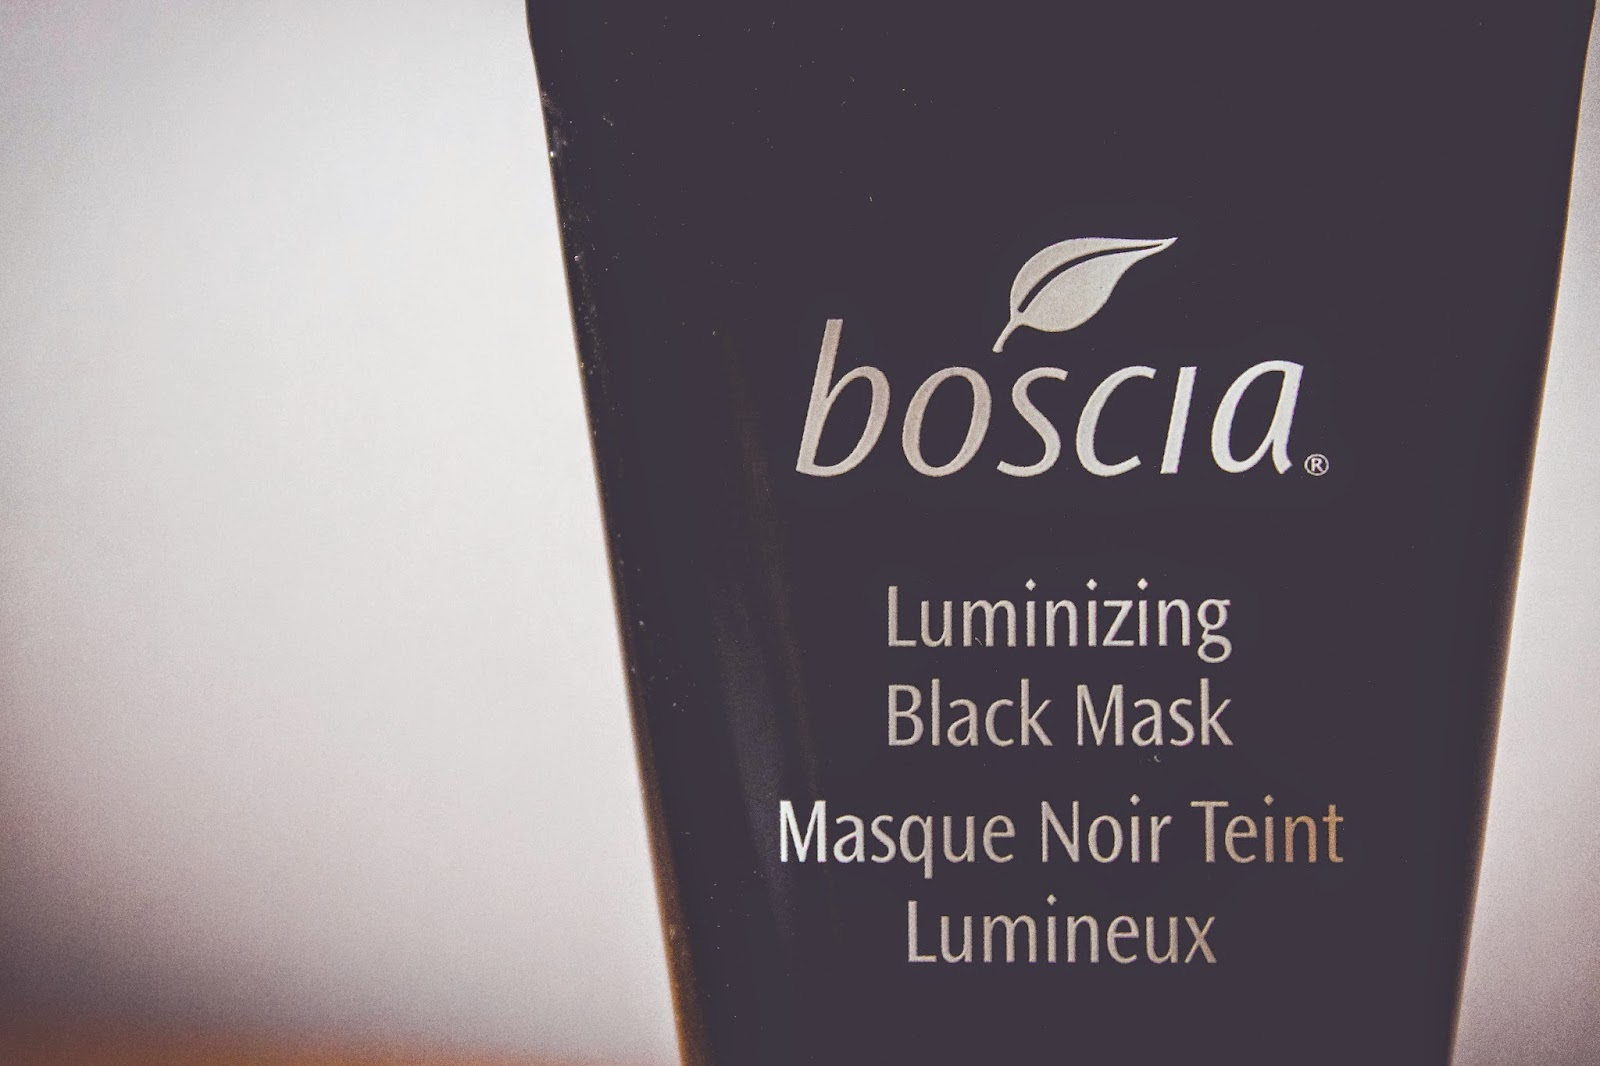 boscia skincare review bestsellers makeup breakup cool cleansing gel konjac sponge charcoal aluminizing black mask photography beauty